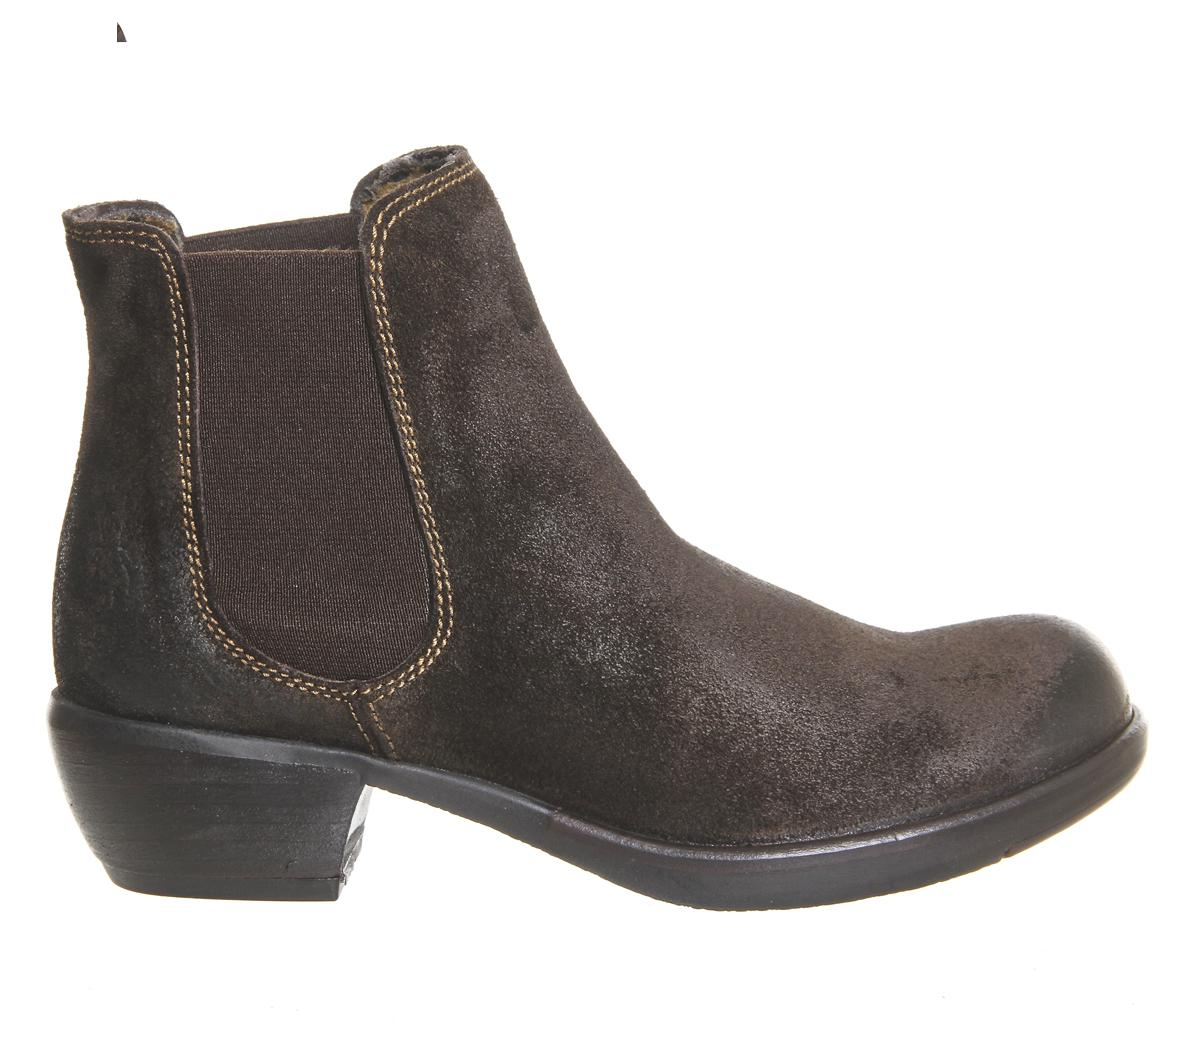 a1e8d5134224 Lyst - Fly London Make Chelsea Boots